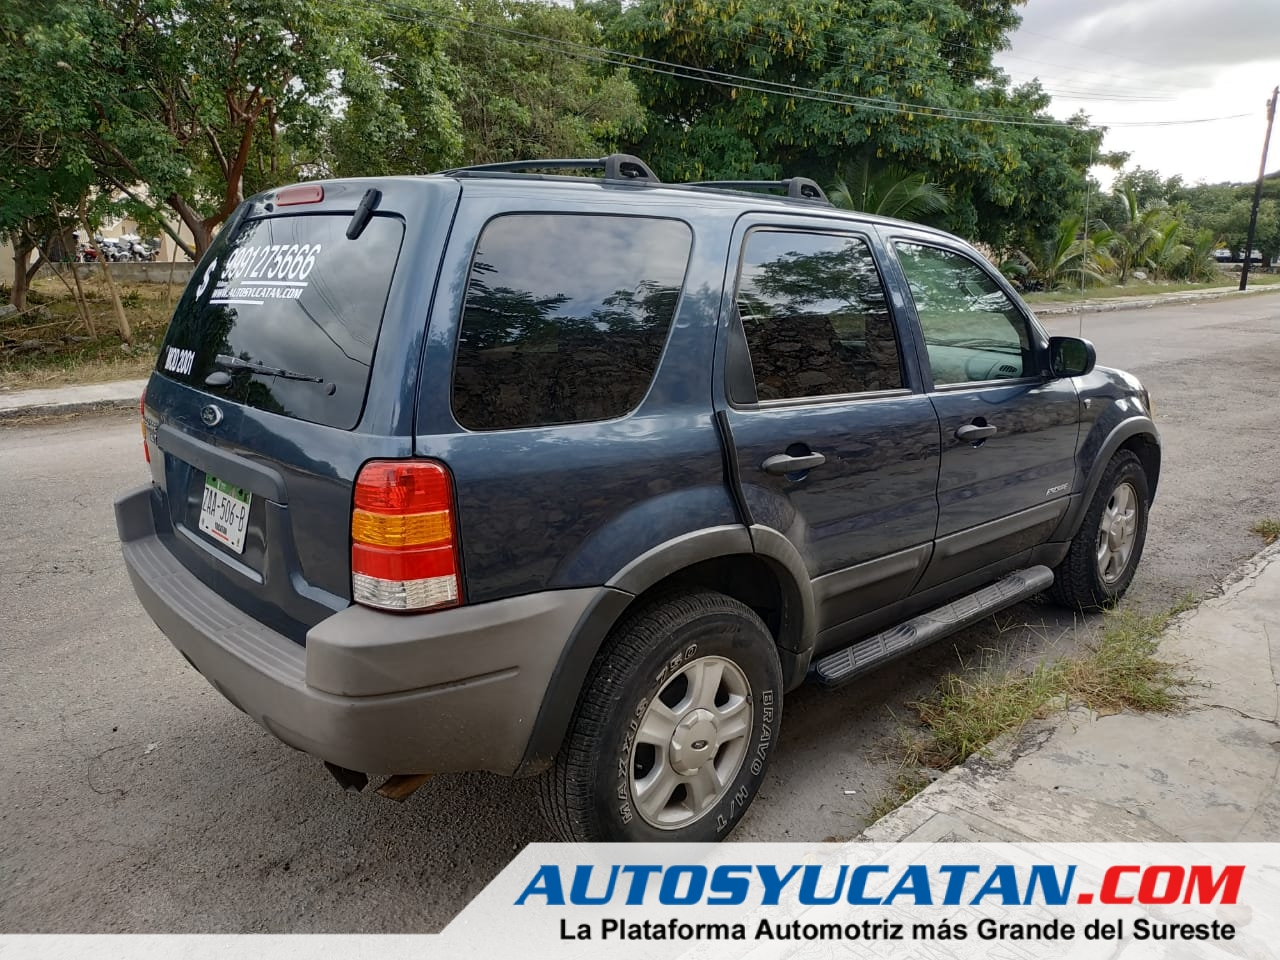 Ford Escape 2001 Autos Yucatan